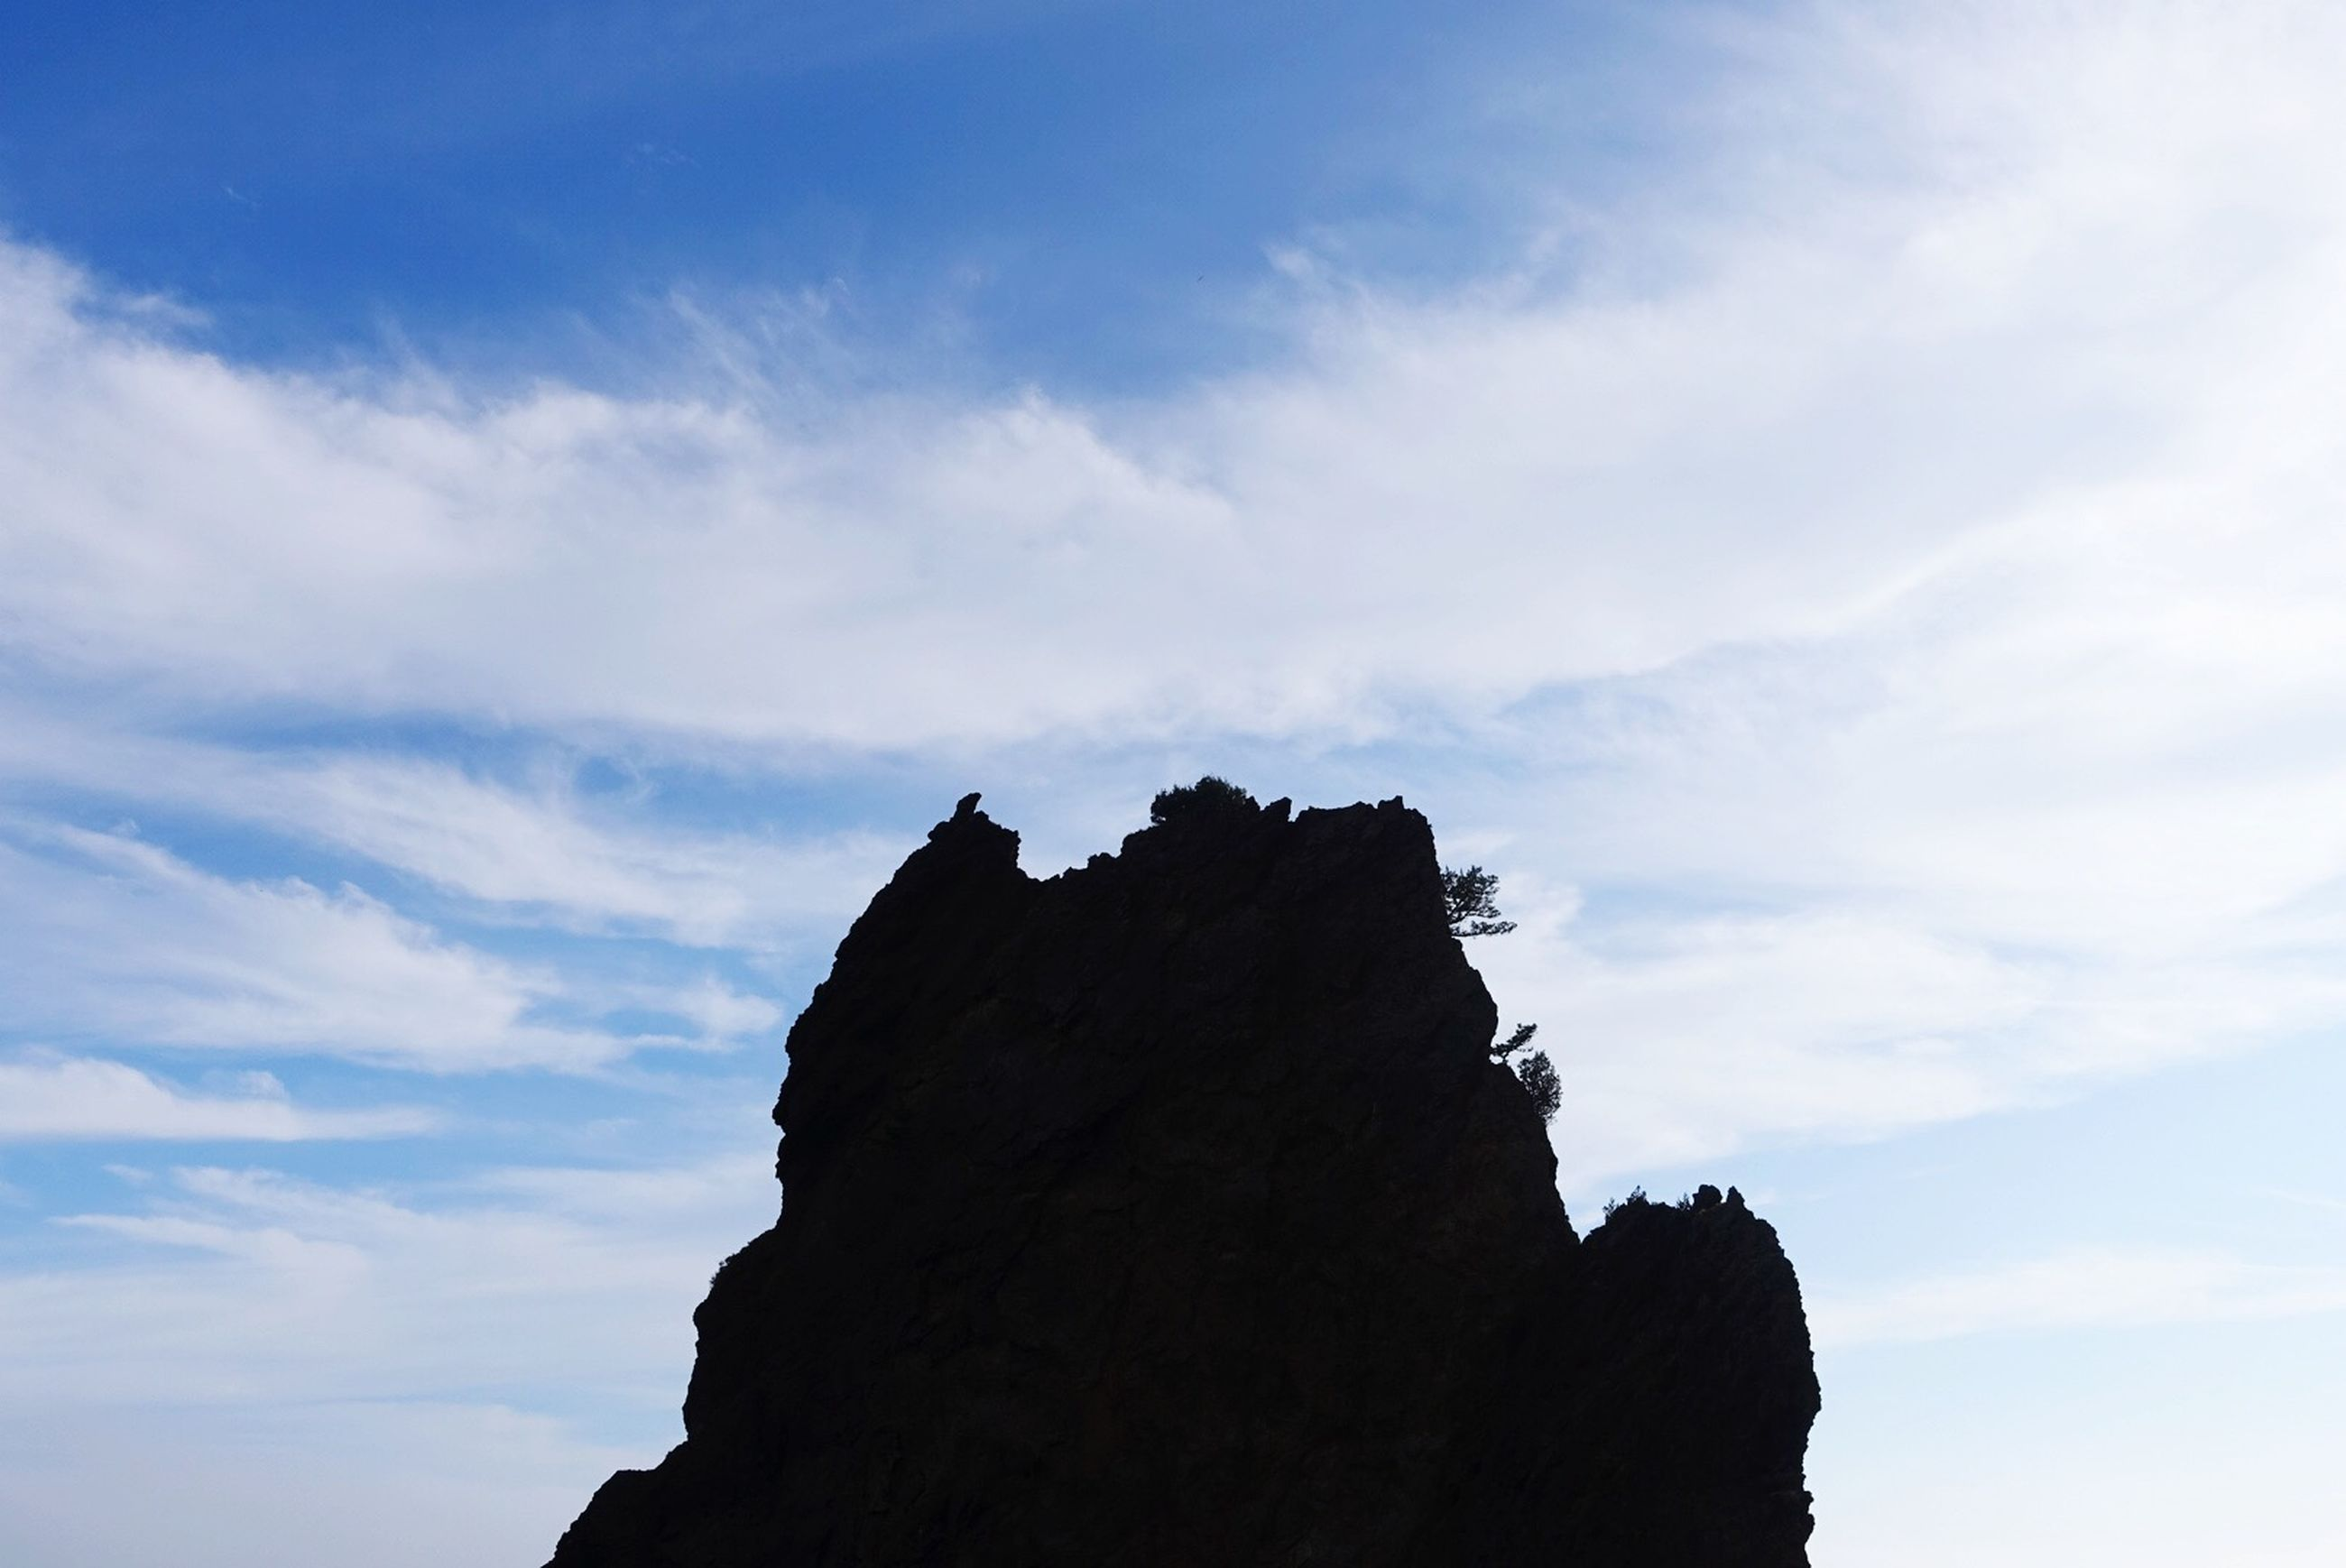 sky, low angle view, rock - object, rock formation, cloud - sky, tranquility, scenics, silhouette, nature, tranquil scene, beauty in nature, cloud, cliff, outdoors, day, blue, rock, no people, cloudy, rocky mountains